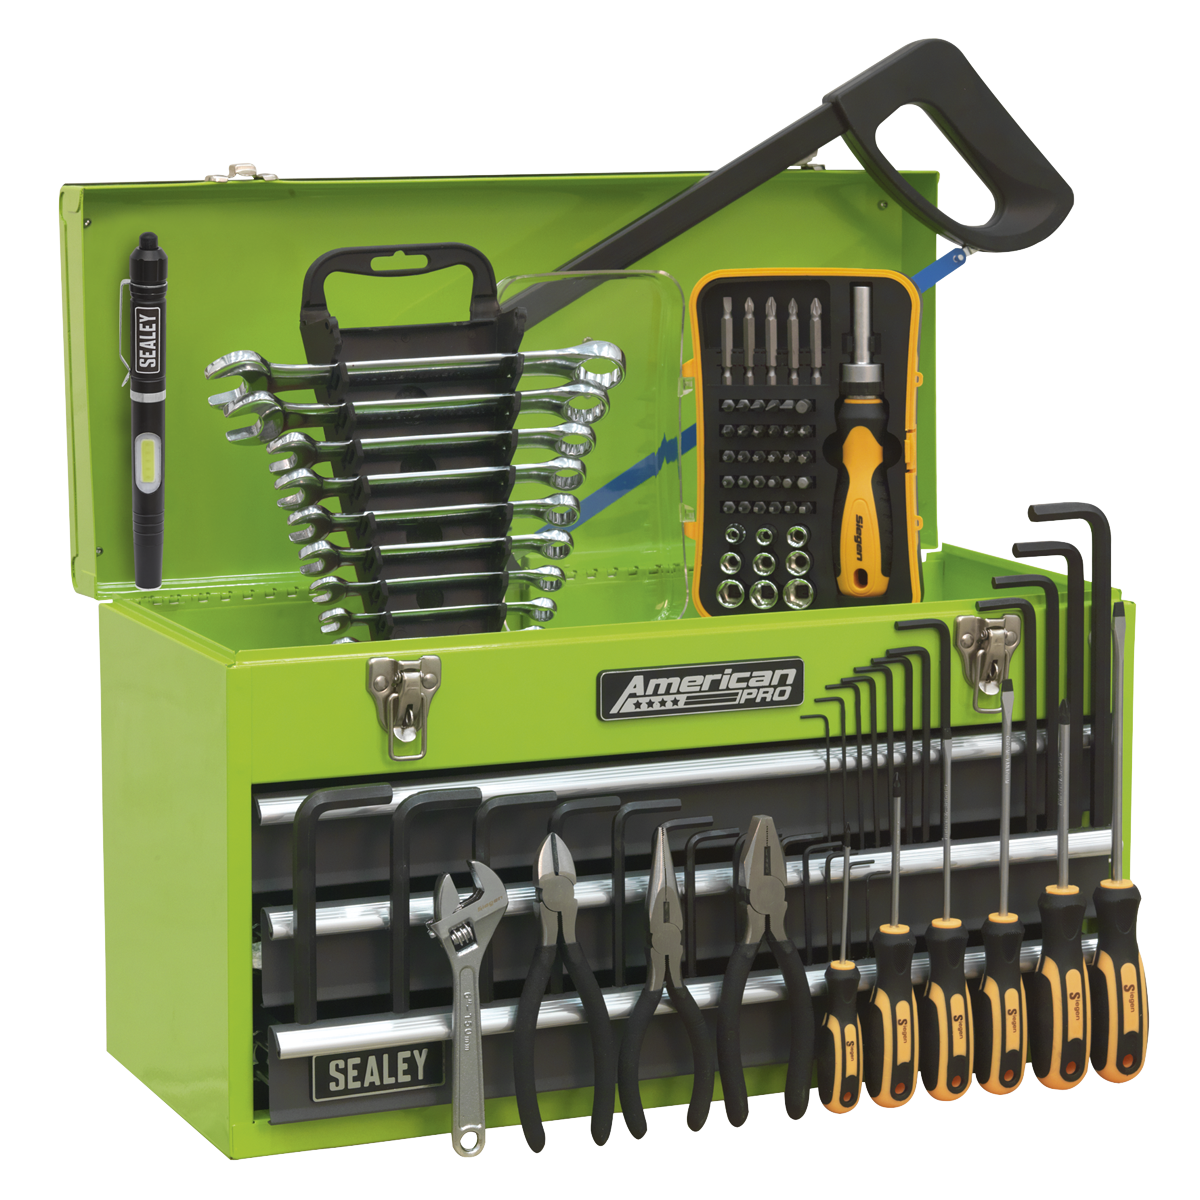 Sealey Portable Tool Chest 3 Drawer With 93pc Tool Kit AP9243GGHVCOM | Sealey American Pro Top Box | 3 roller bearing drawers | toolforce.ie